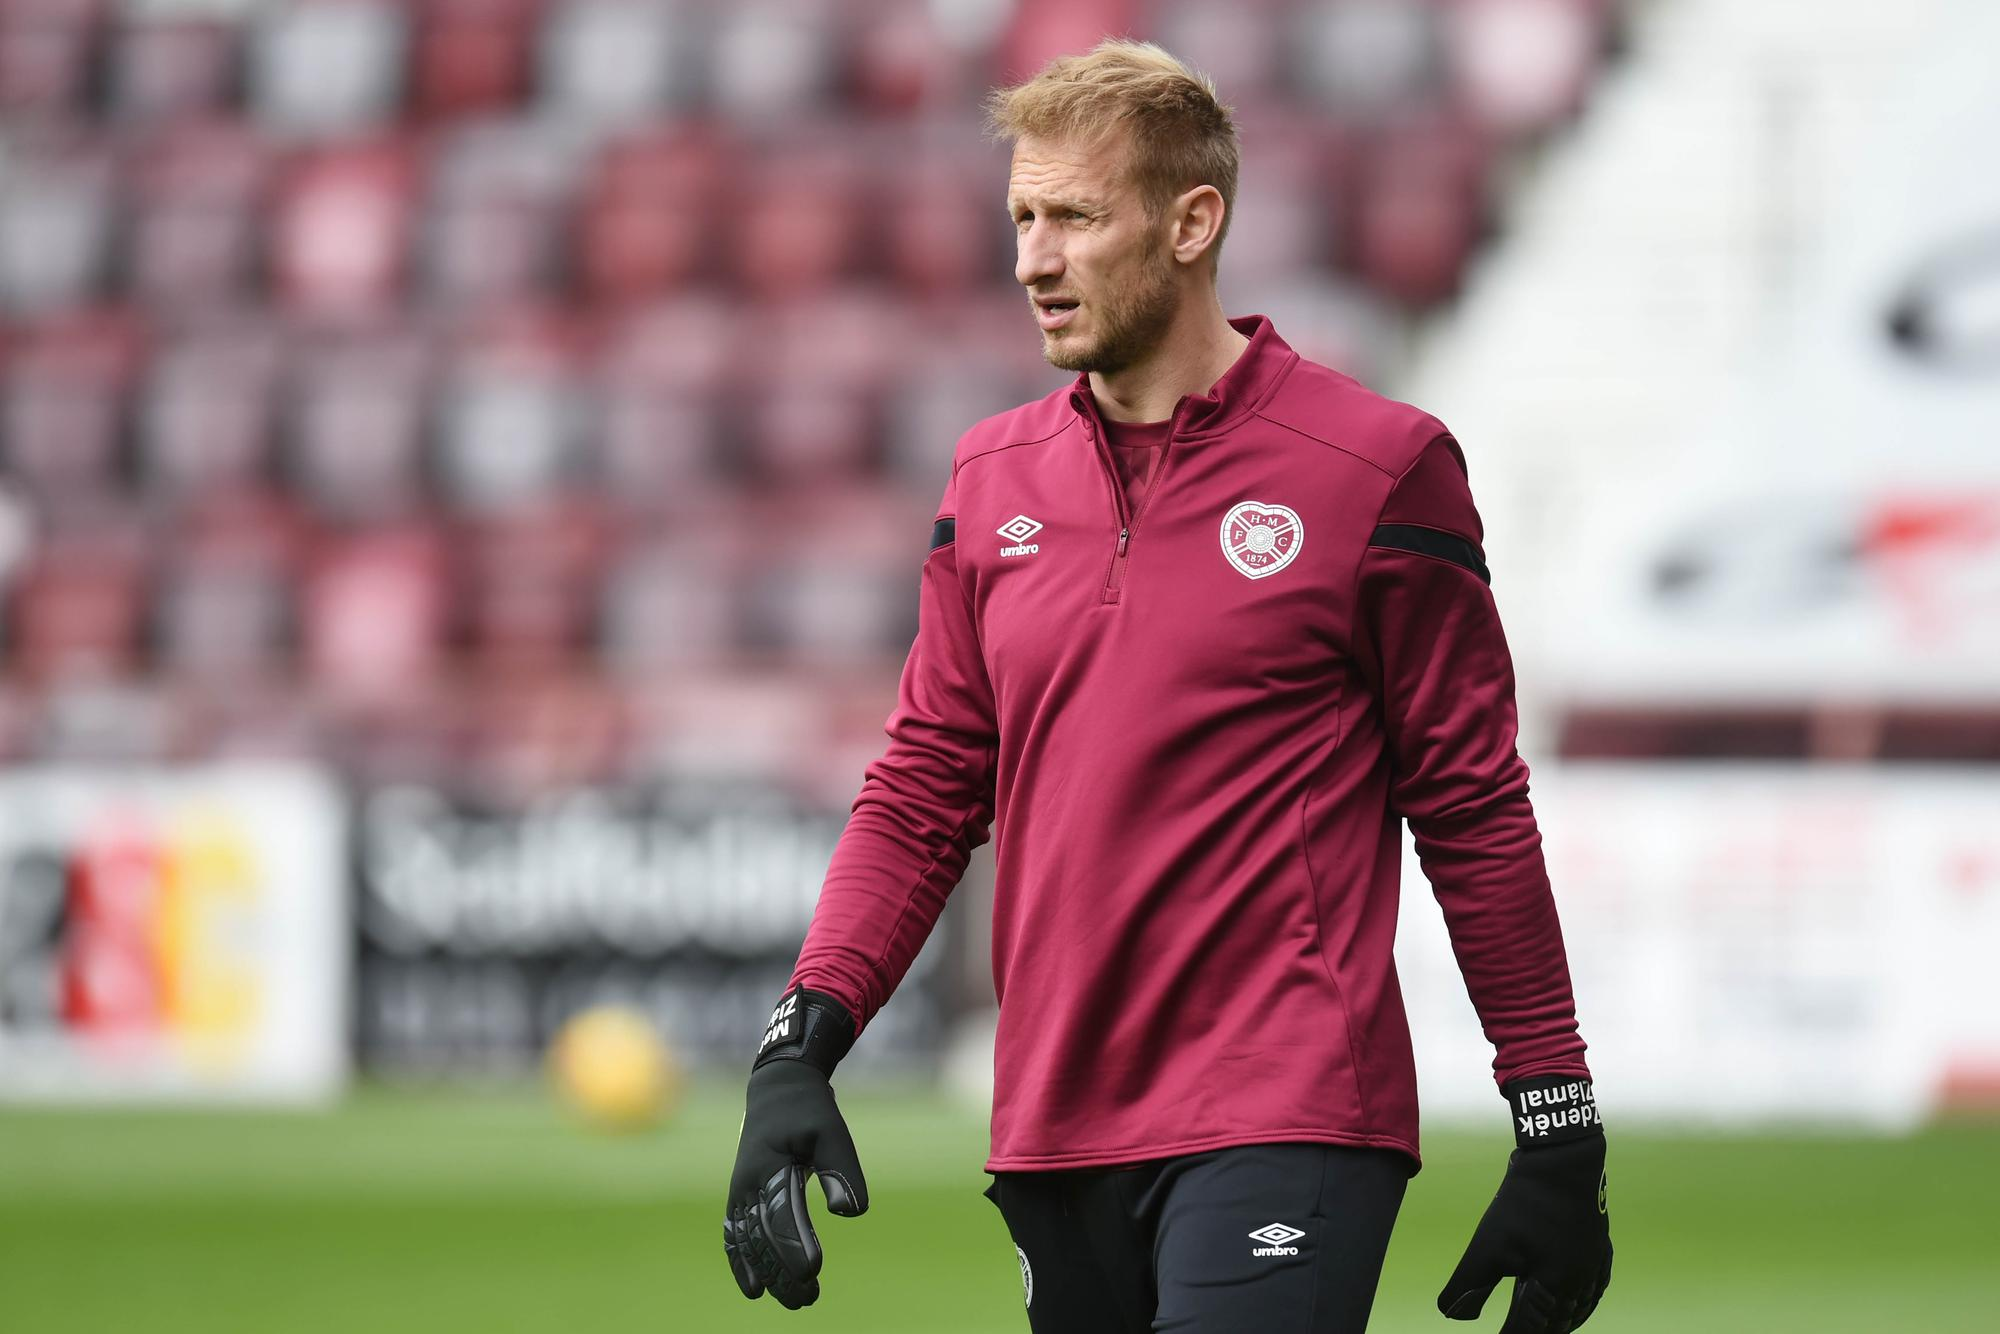 Hearts keeper Zdenek Zlamal speaks on Craig Gordon arrival and thoughts on future at Tynecastle